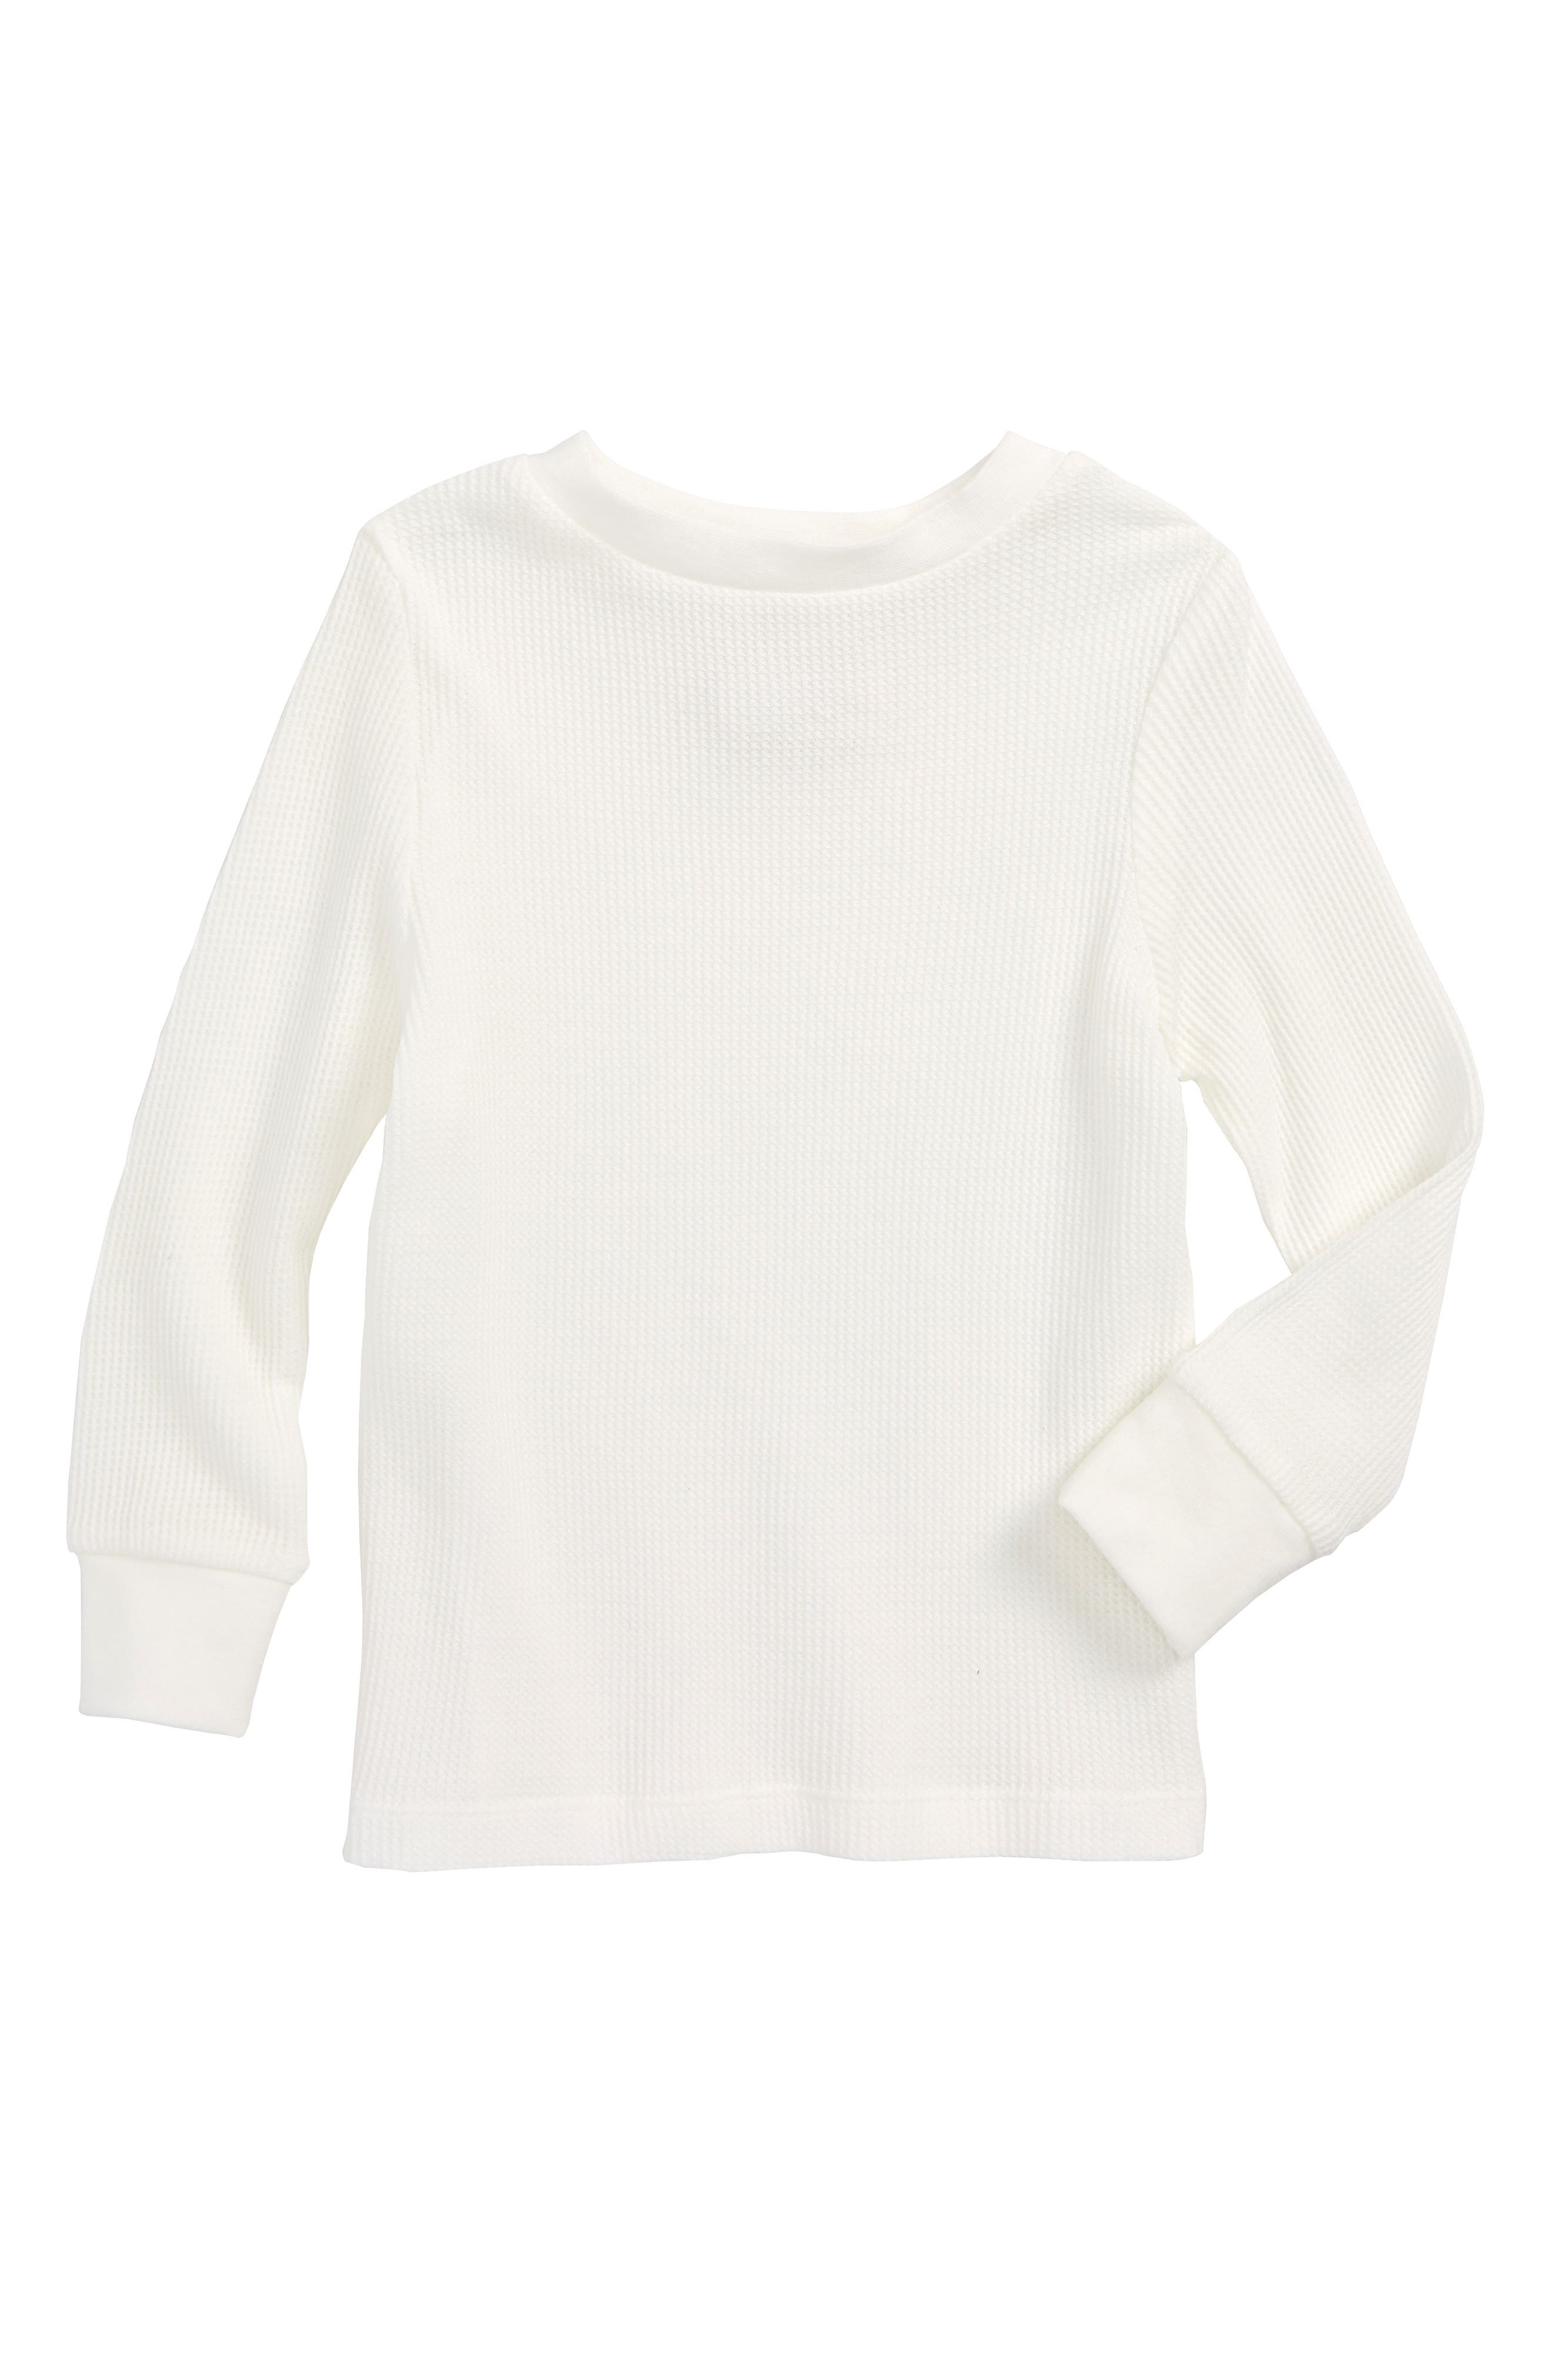 Thermal T-Shirt,                         Main,                         color, Off White